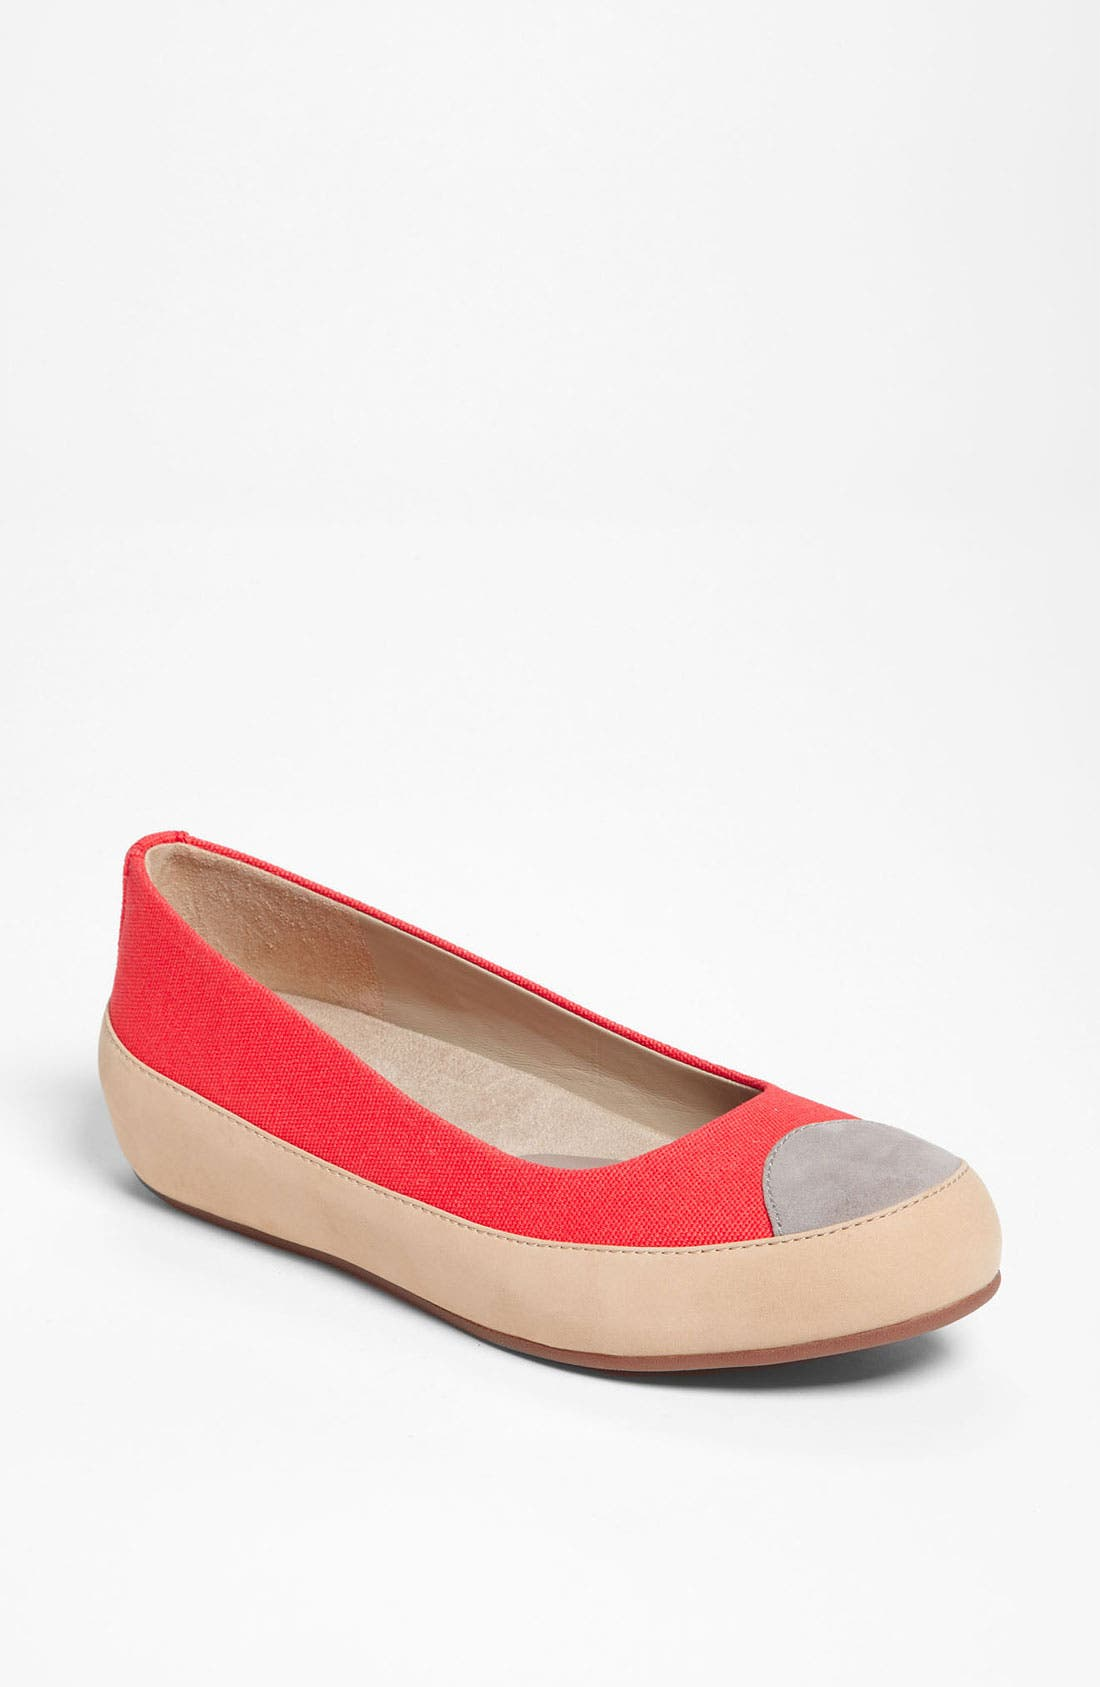 Alternate Image 1 Selected - FitFlop 'Dué™' Canvas Flat